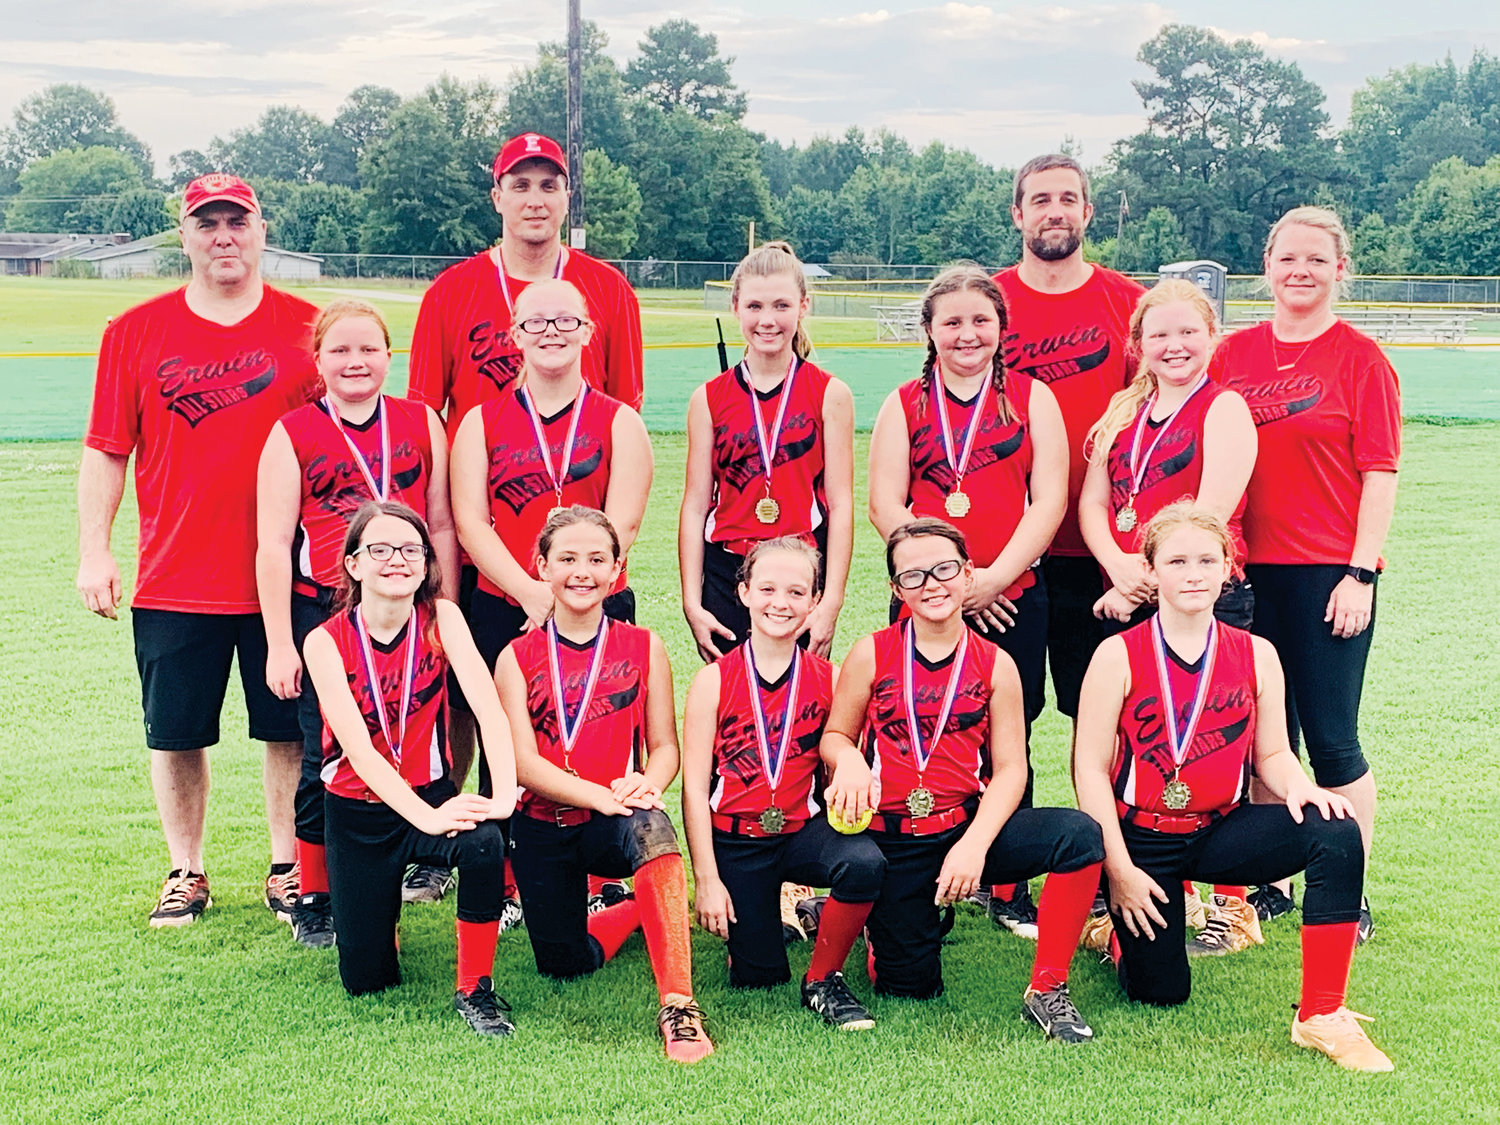 Erwin's 10-and-under softball team won the Tar Heel District III tournament this past weekend in Erwin. Kneeling, from left, are Paisleigh Lucas, Bryleigh Smith, Grace Foisy, Megan Harrold and Charley Beasley. Standing in front are Peyton Dunn, Adison Bowden, Sydney Bradham, Mackenzie Lucas and Leigha Roberts. Standing in the back are coach David Bradham, coach Travis Pollard, coach John Paul Foisy and coach Amy Foisy.